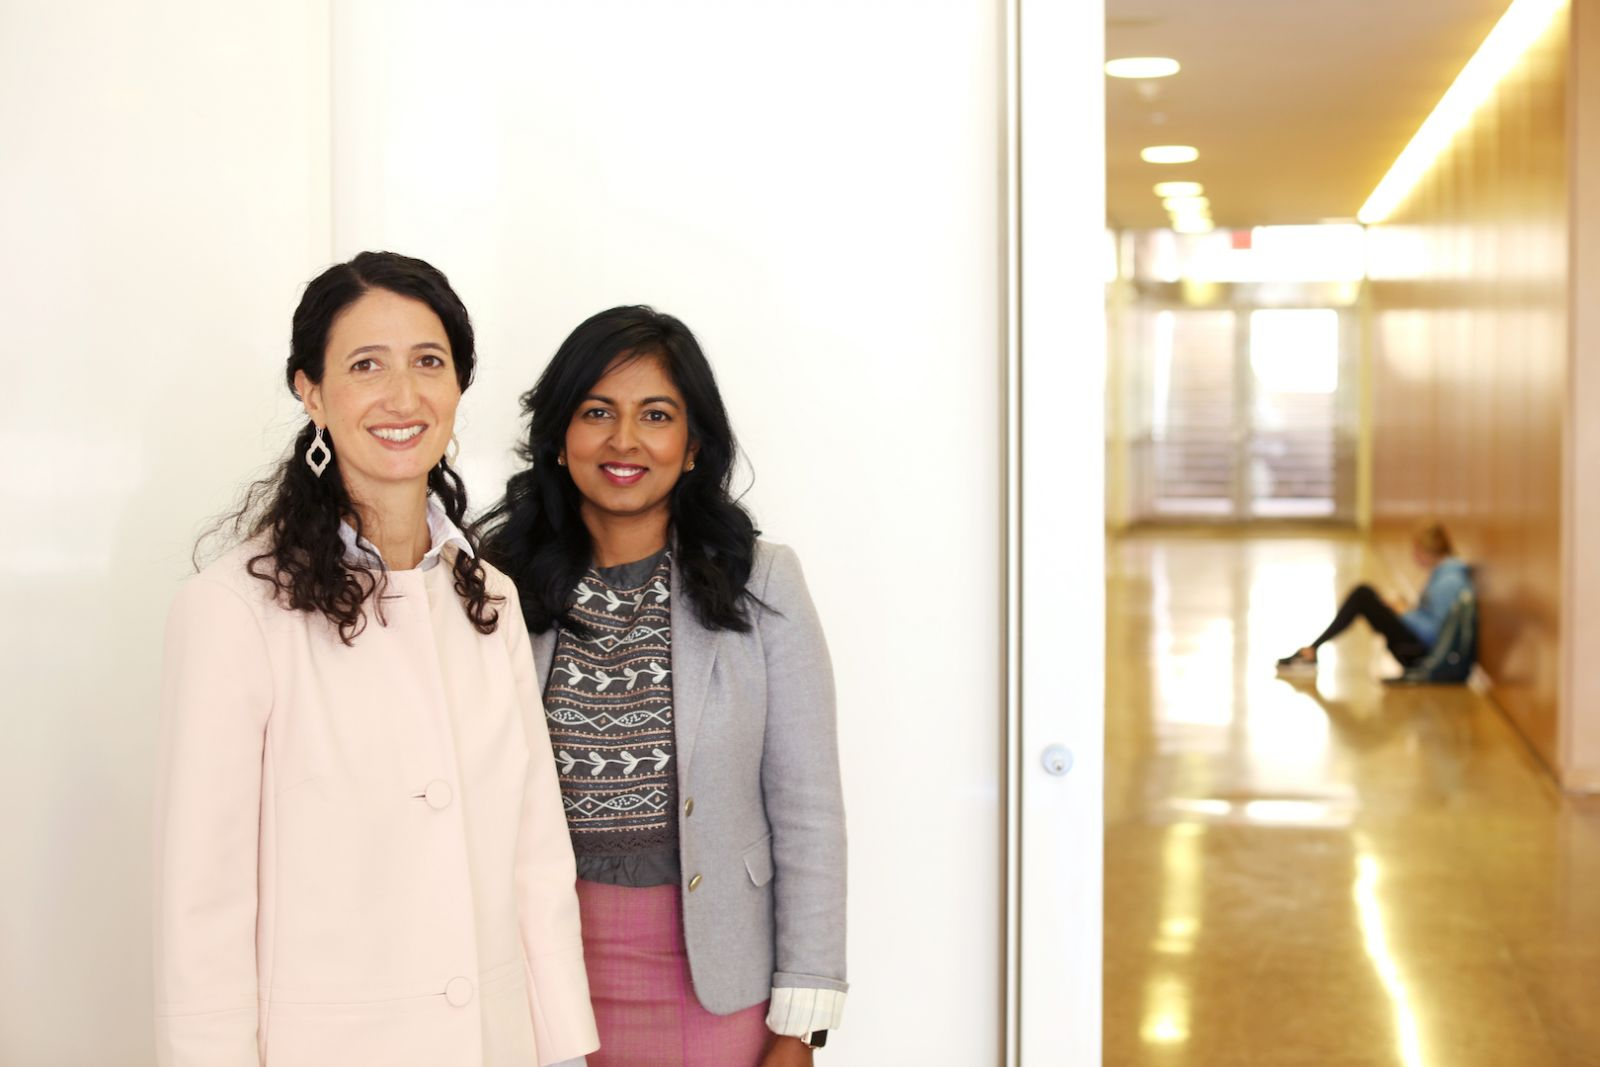 Kelly Hogan and Viji Sathy